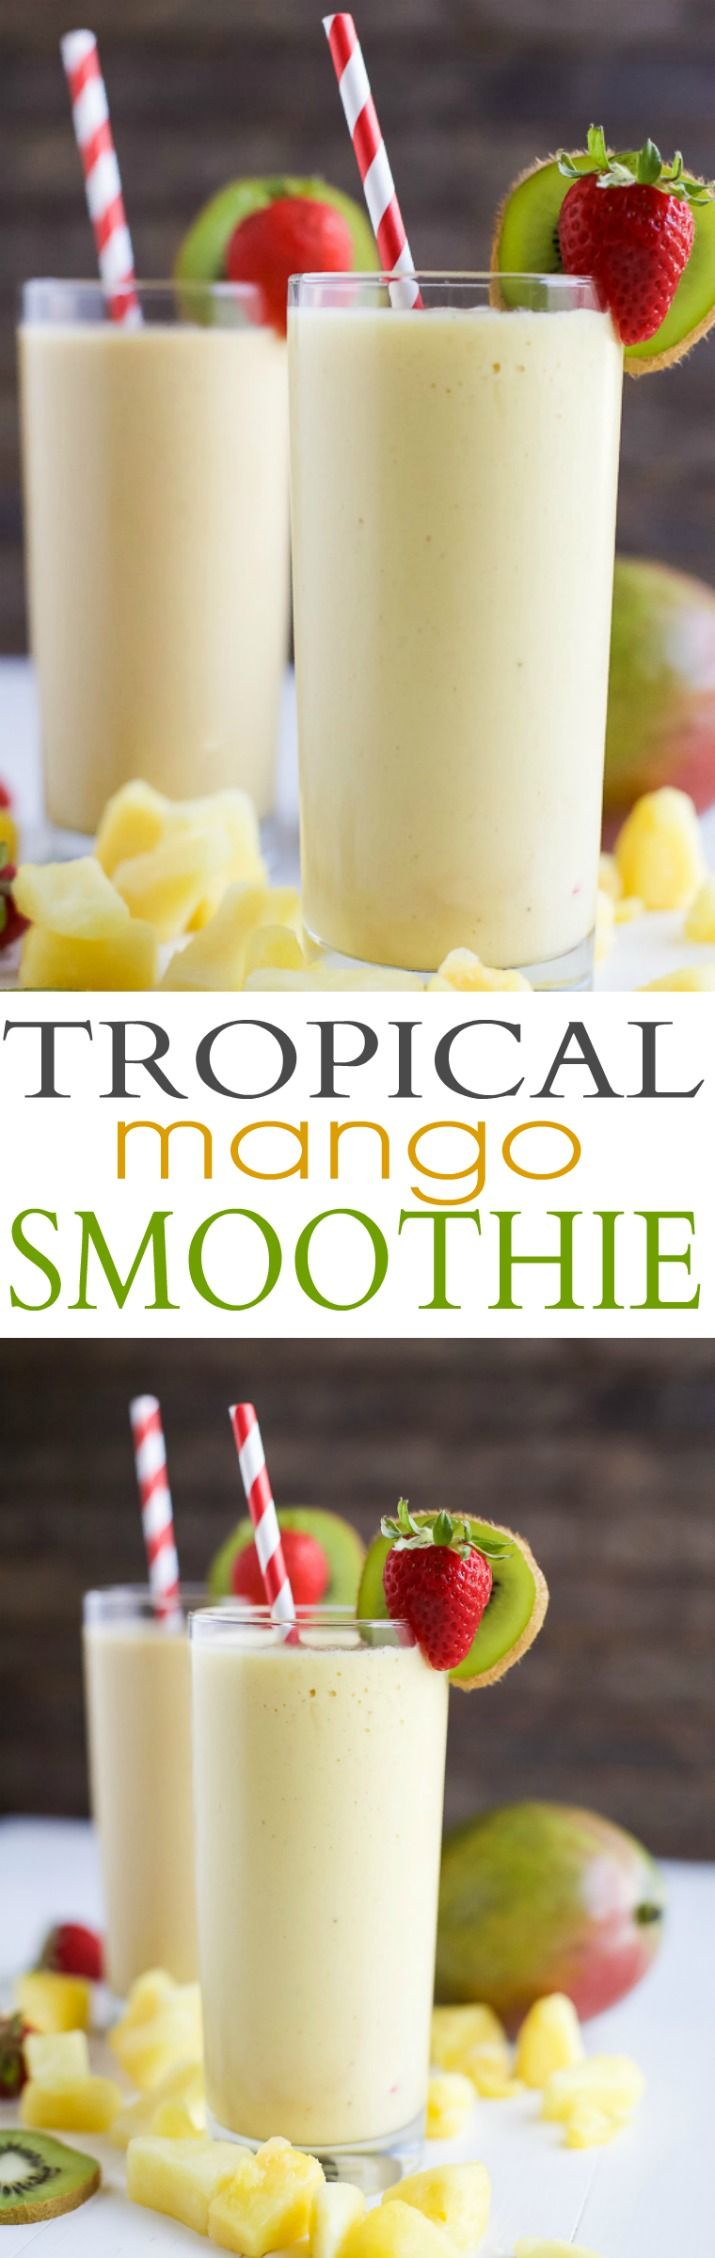 This refreshing Tropical Mango Smoothie is the perfect way to start your day. Fresh flavors that will take you straight to the beach and with 21 grams of protein!   joyfulhealthyeats.com   #drinkitallin #ad